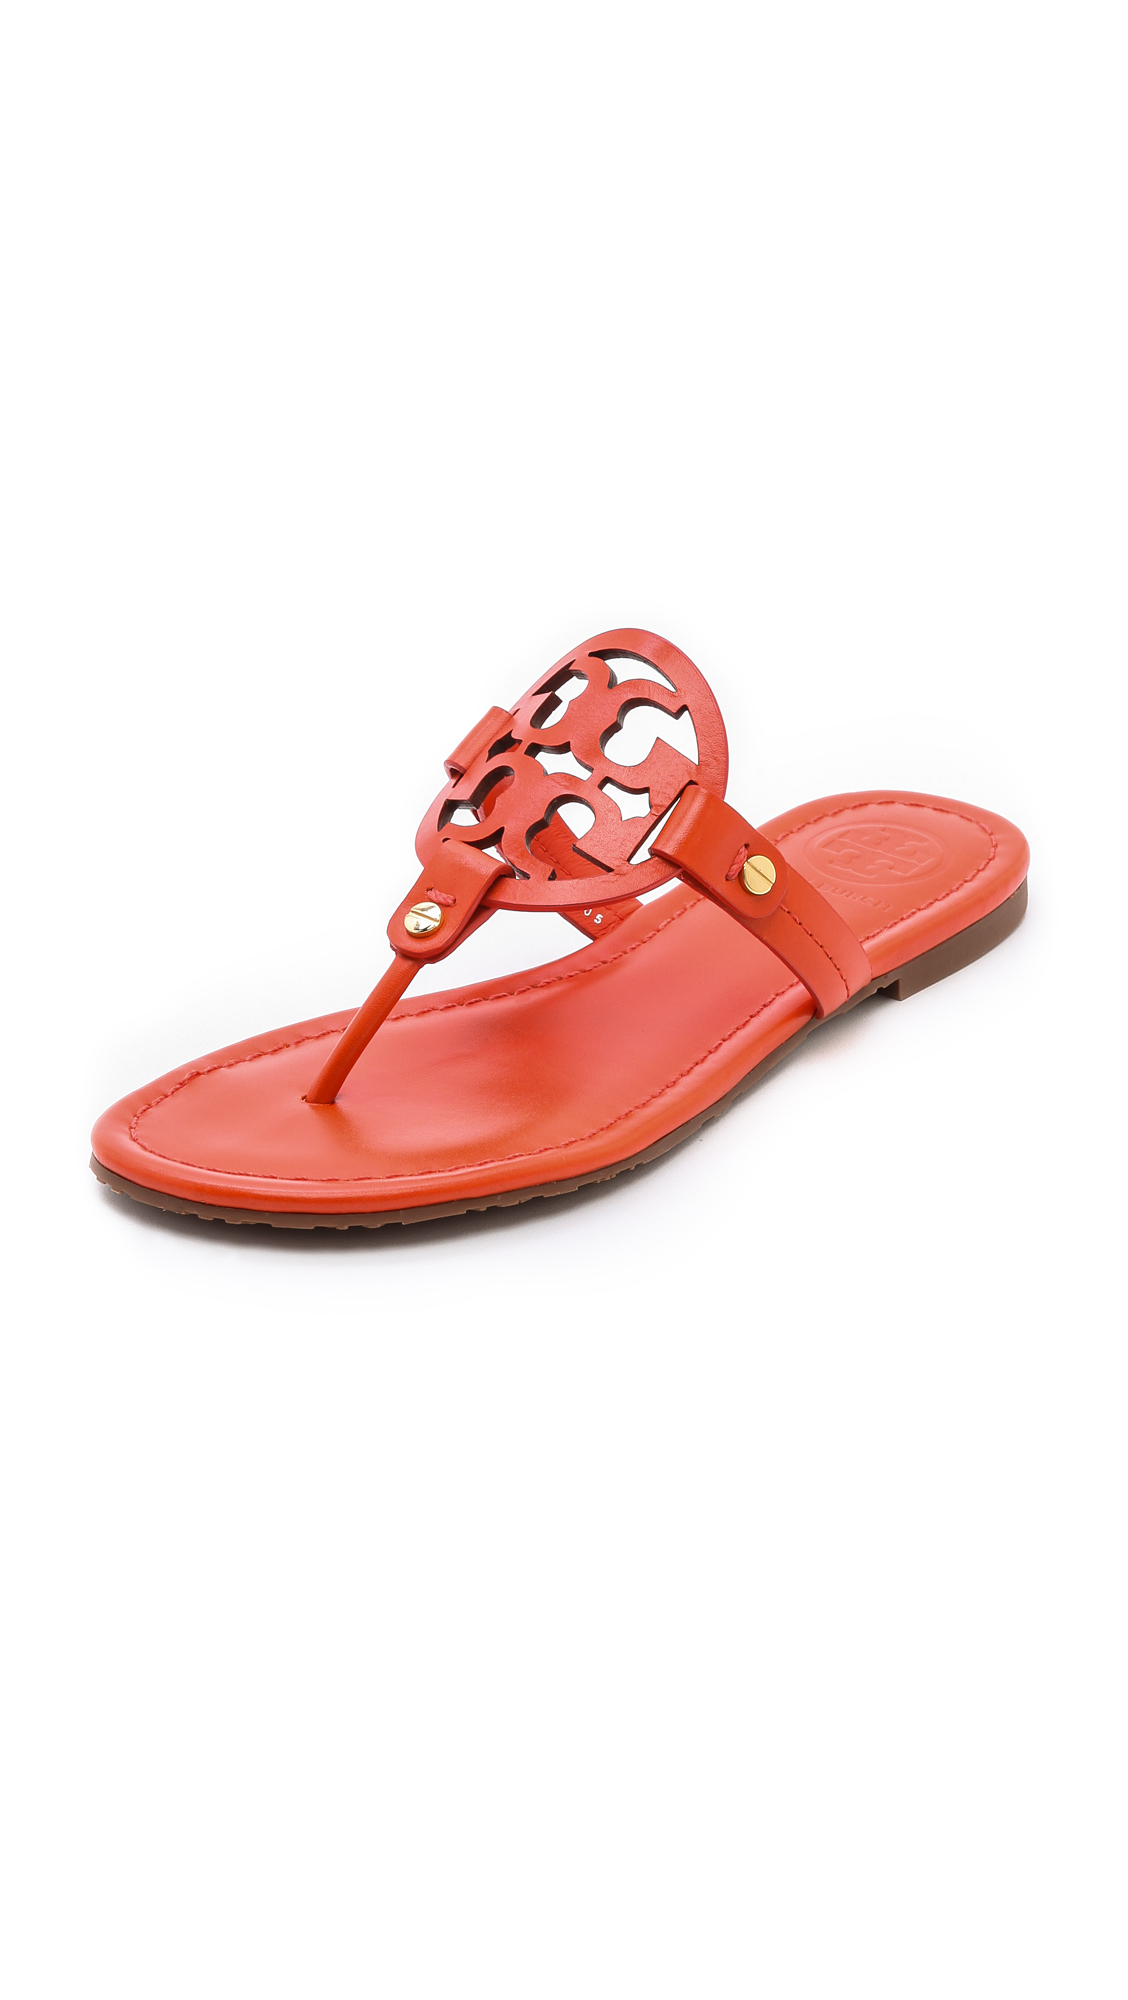 Tory Burch Miller Logo Sandals In Orange Tiger Lily Lyst